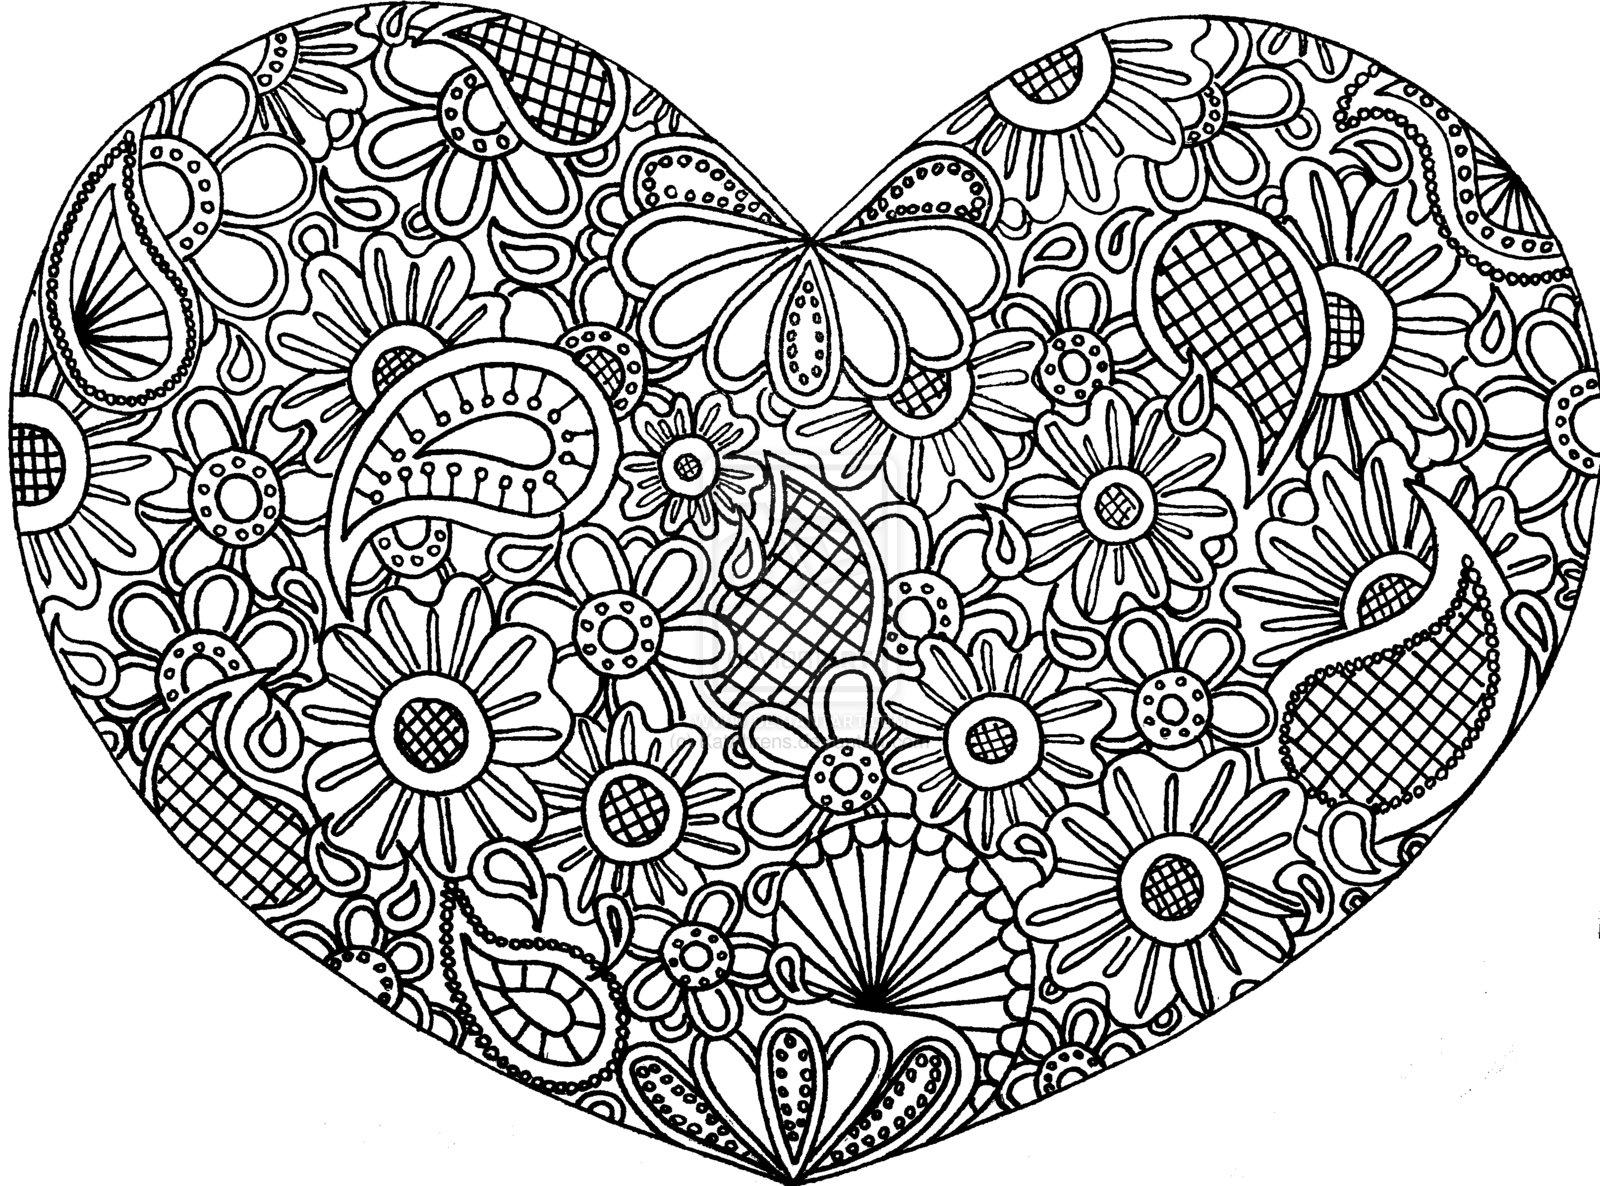 Free printable zentangle coloring pages for adults - Colored Zentangles Hearts Free Doodle Art Coloring Pages Coloring Pages Pictures Imagixs